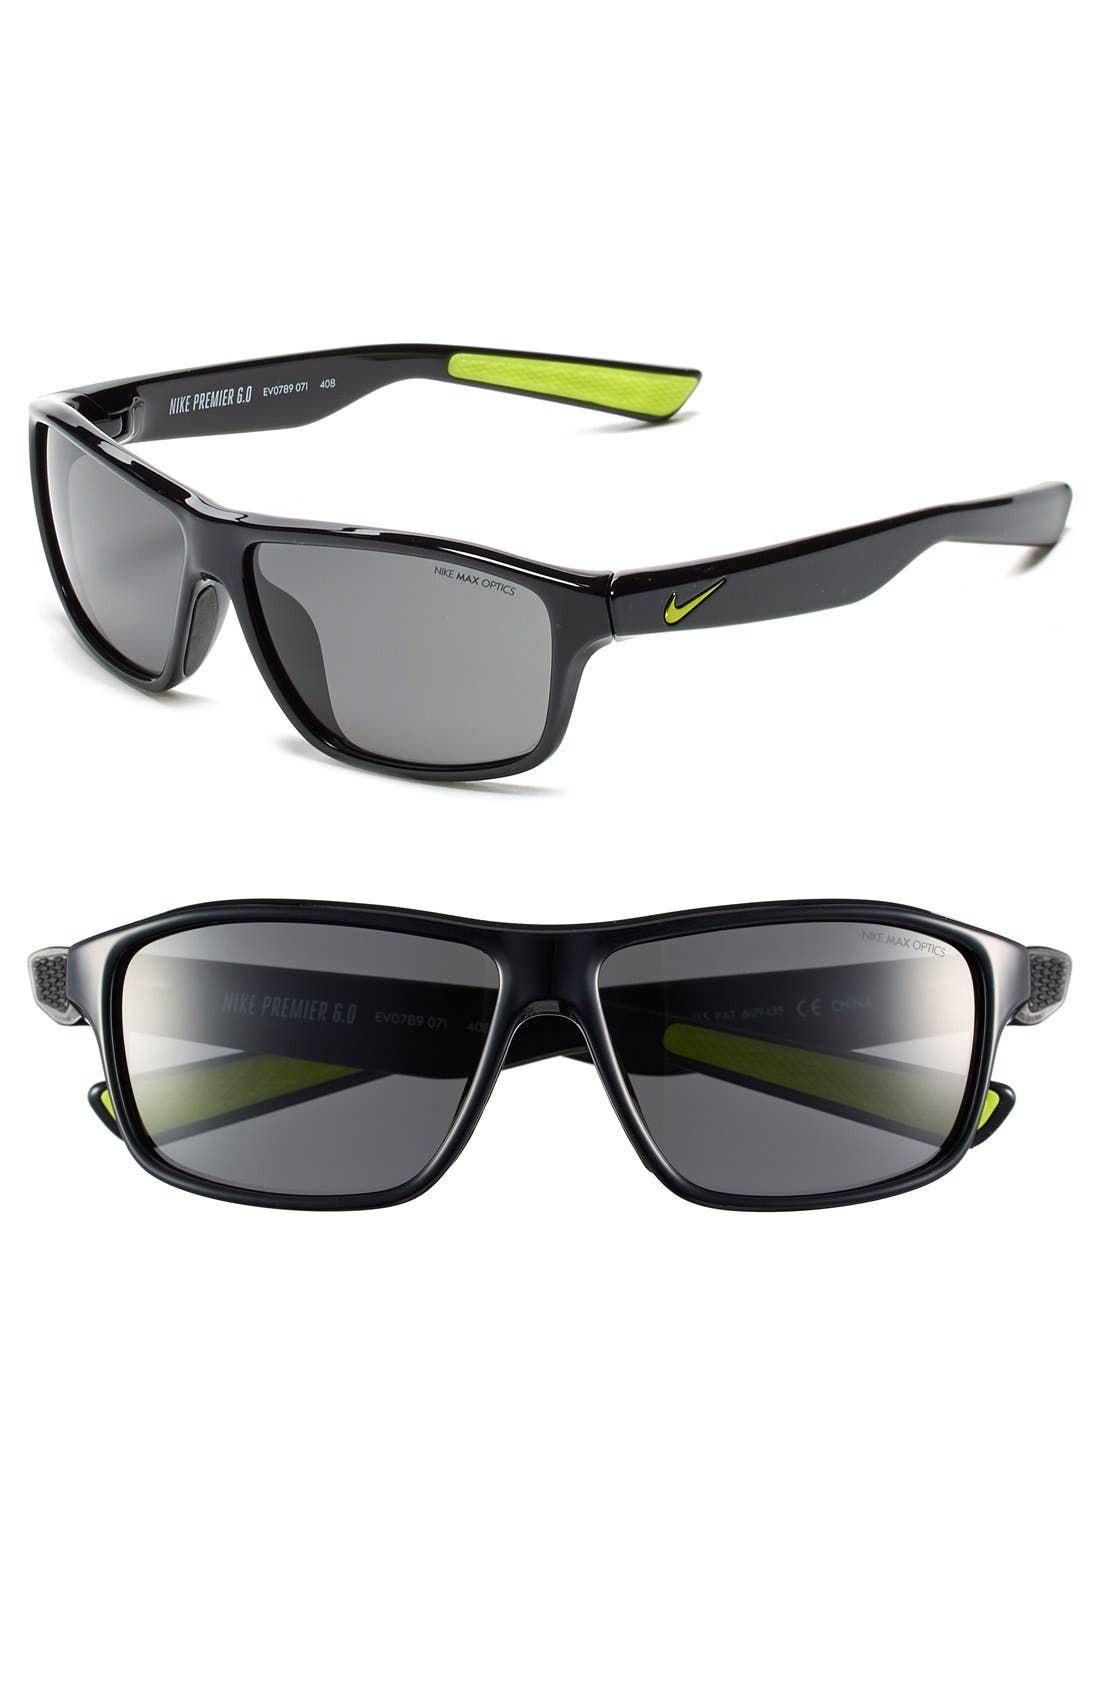 Alternate Image 1 Selected - Nike 59mm 'Premier 6.0' Performance Sunglasses